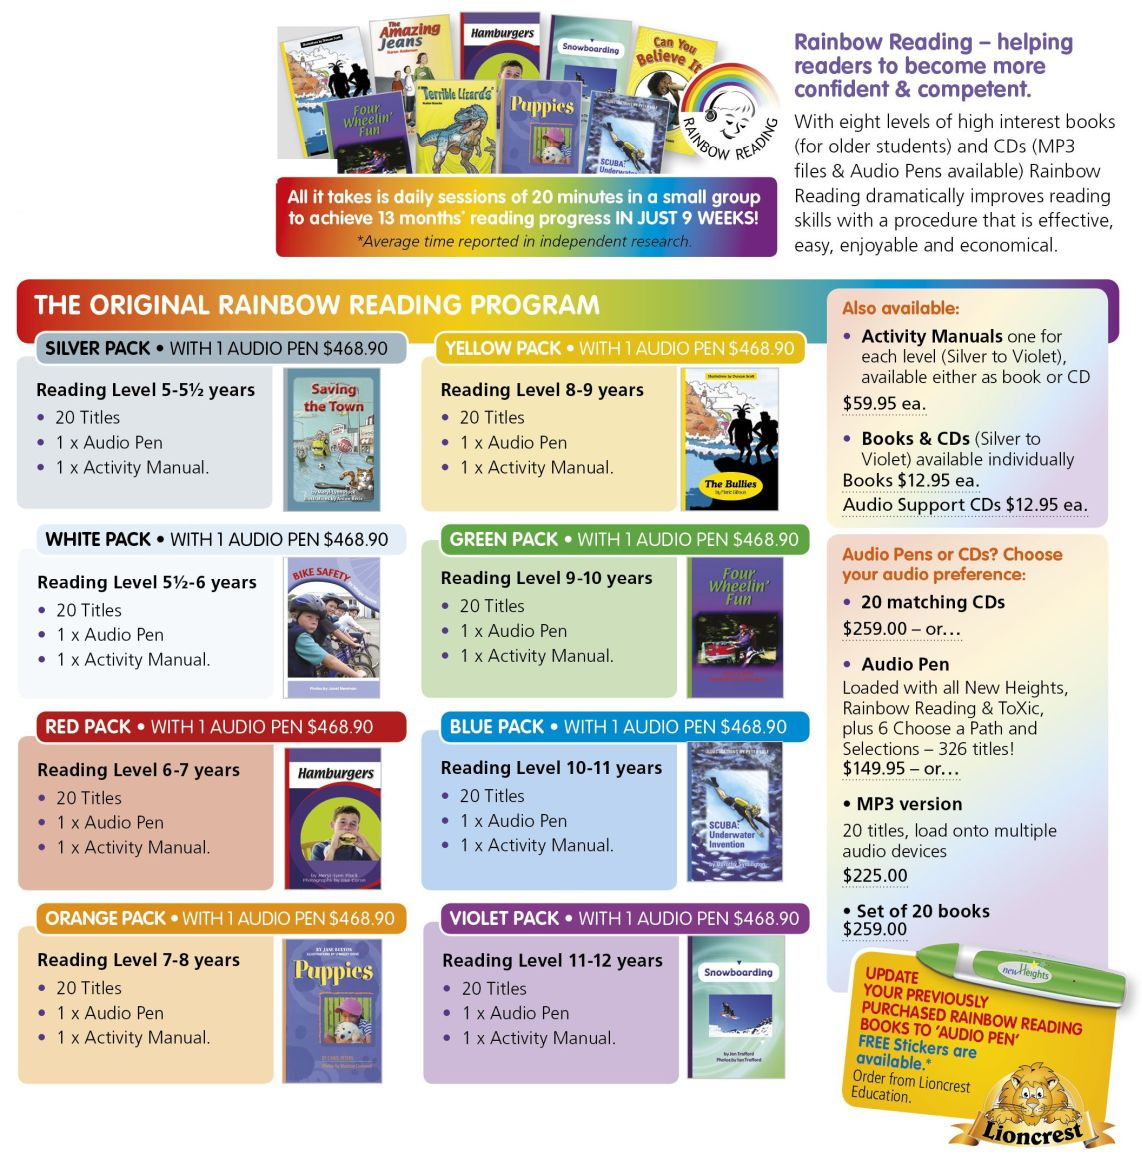 RainbowReading Sets 7 9 20